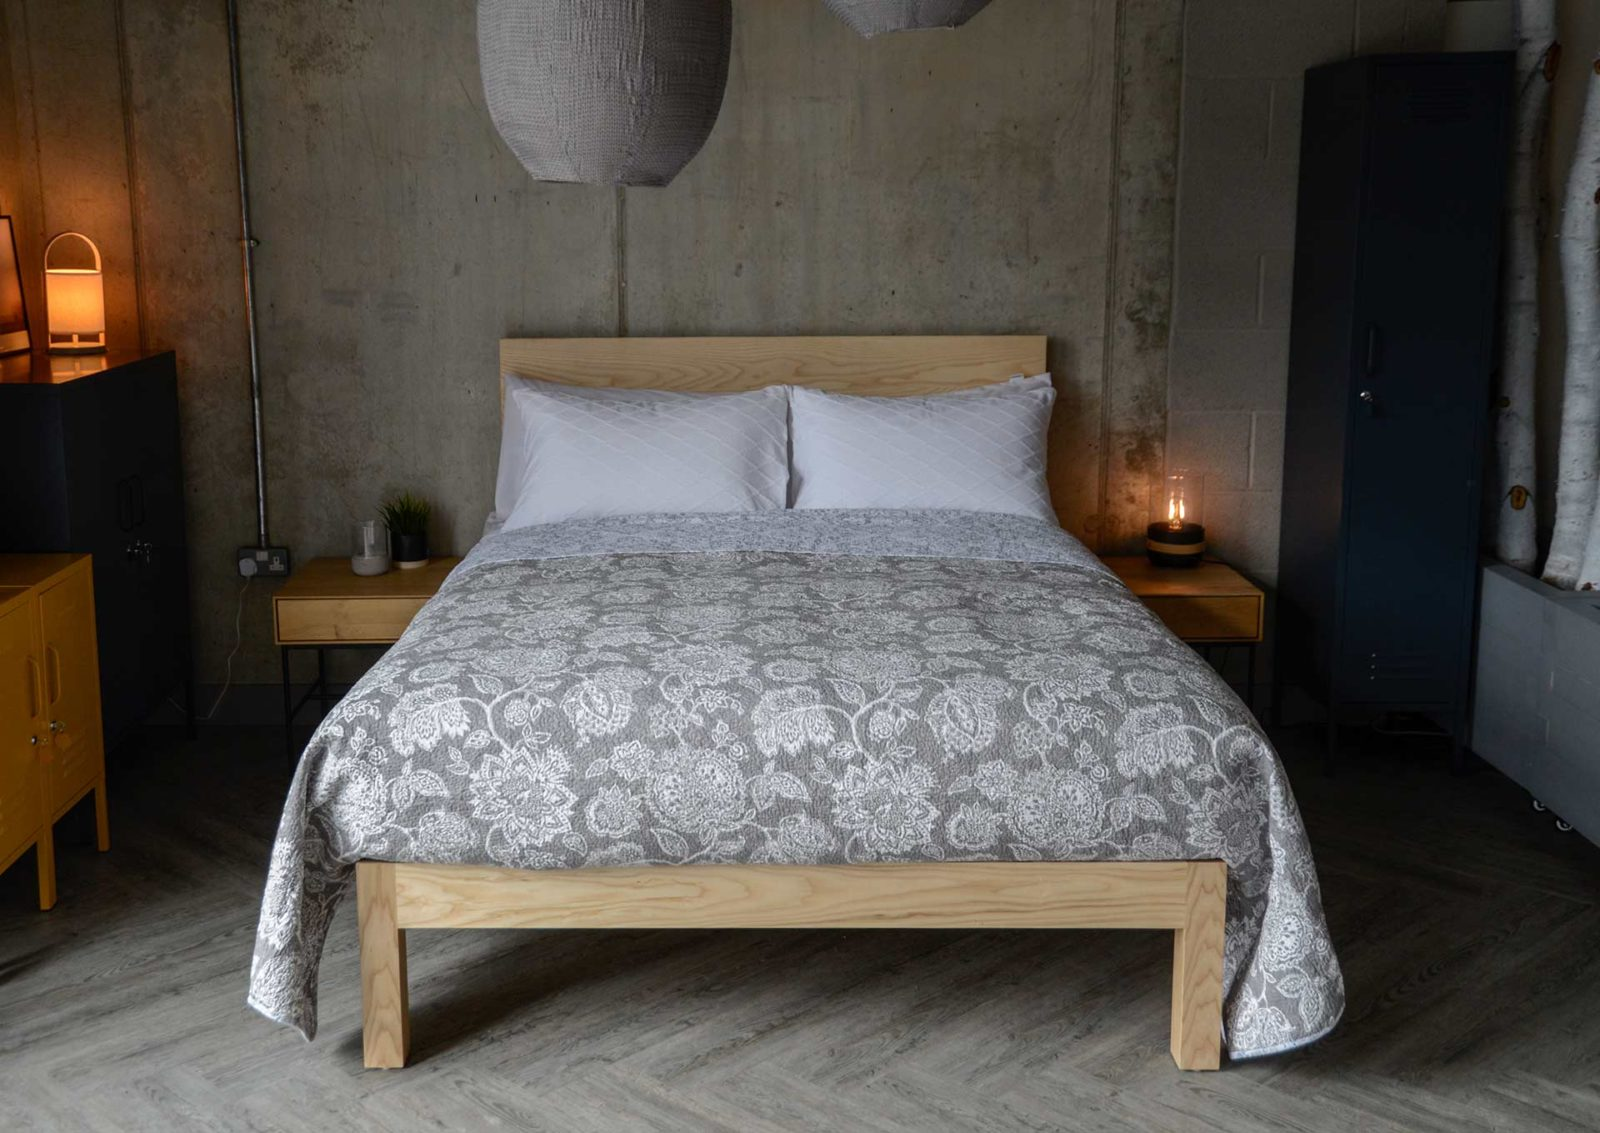 grey and white floral print quilted bedspread